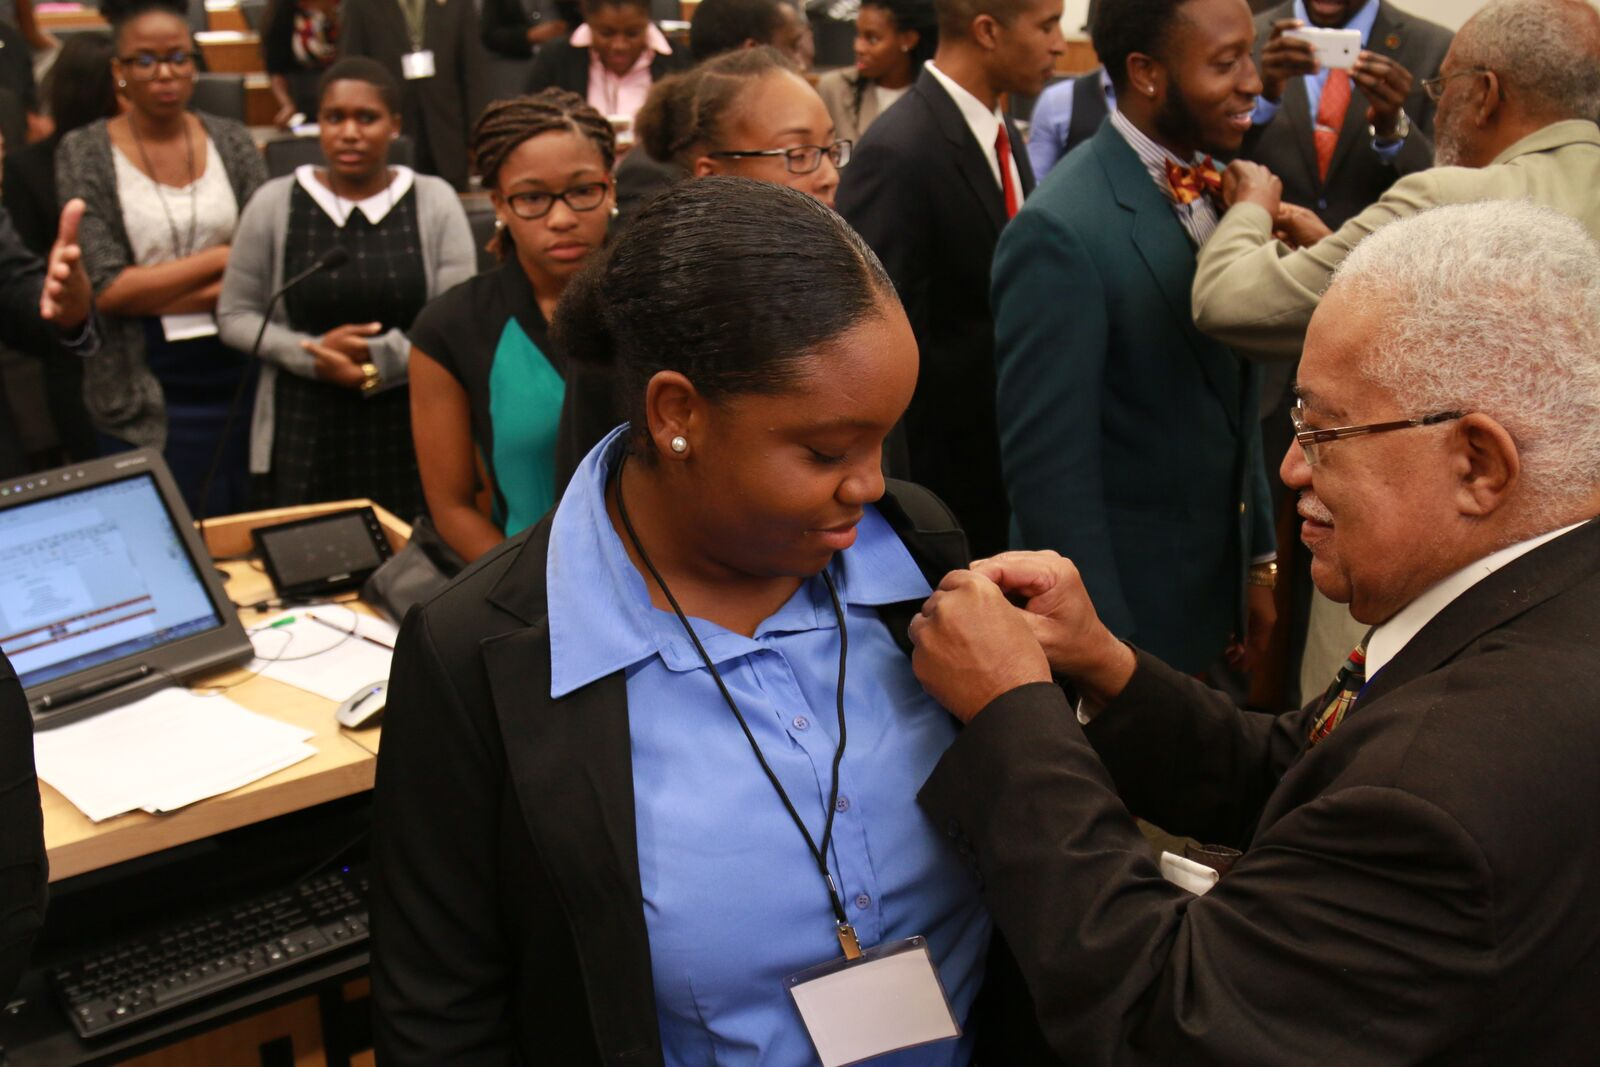 Pre-Law Students Being Pinned